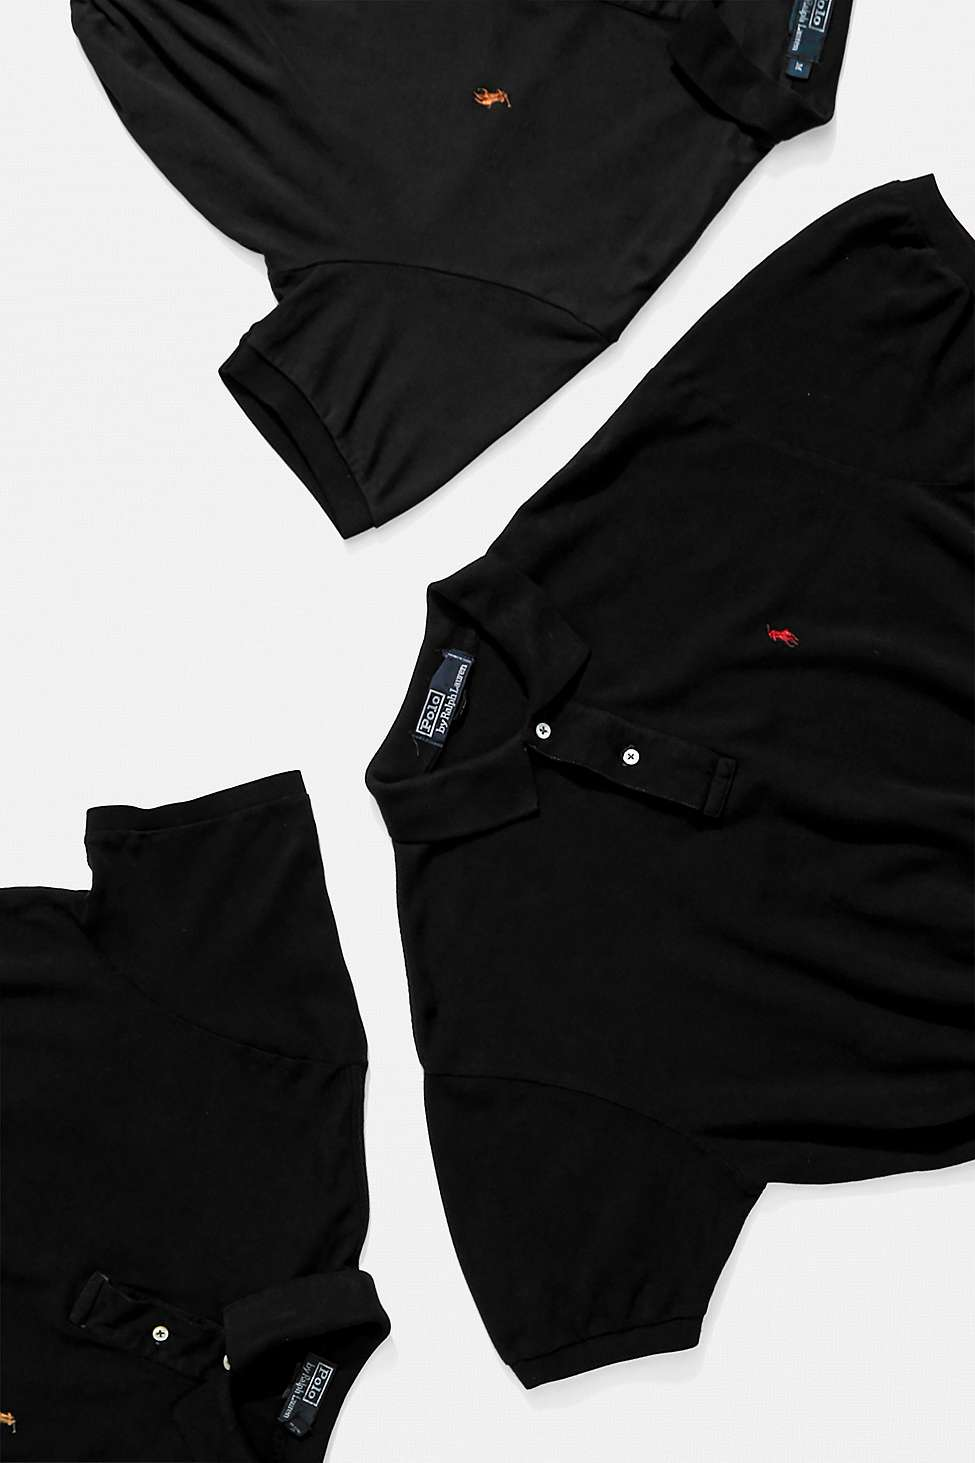 Urban Renewal Remade Branded Black Bungee Polo Shirt by Urban Renewal